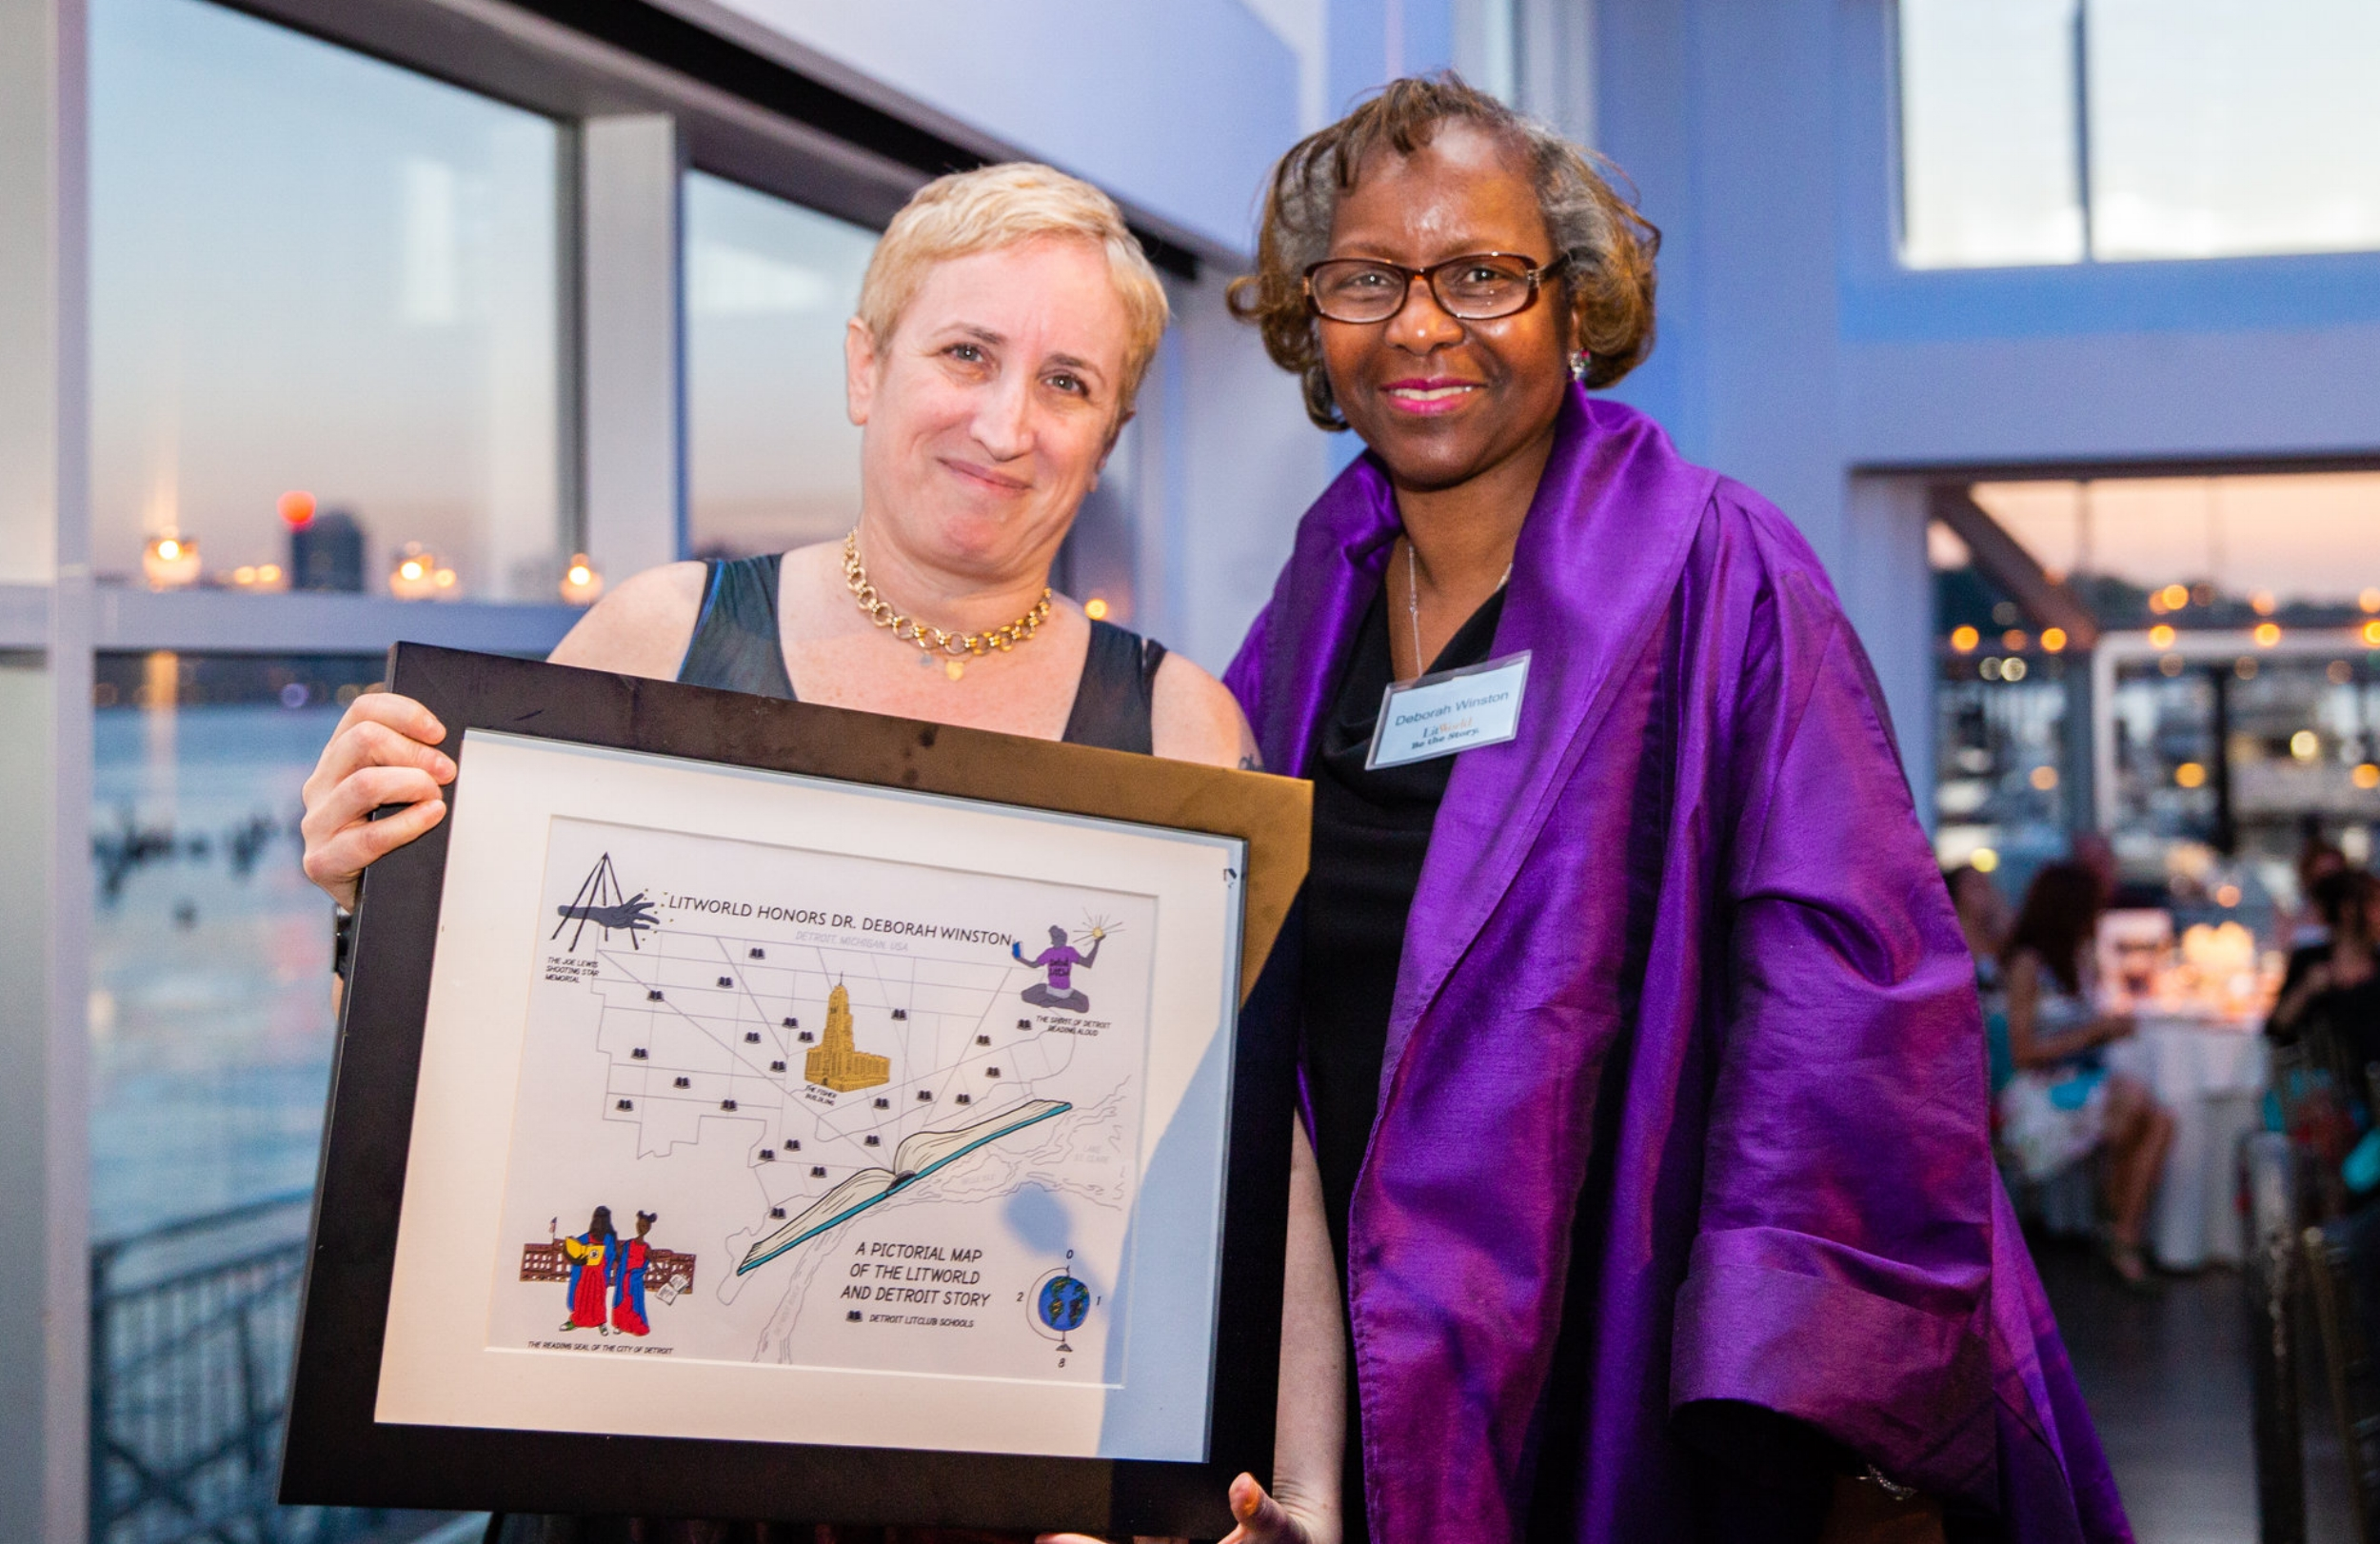 LitWorld's Founder, Pam Allyn, with 2018's Be the Story Honoree, Dr. Deborah Winston.